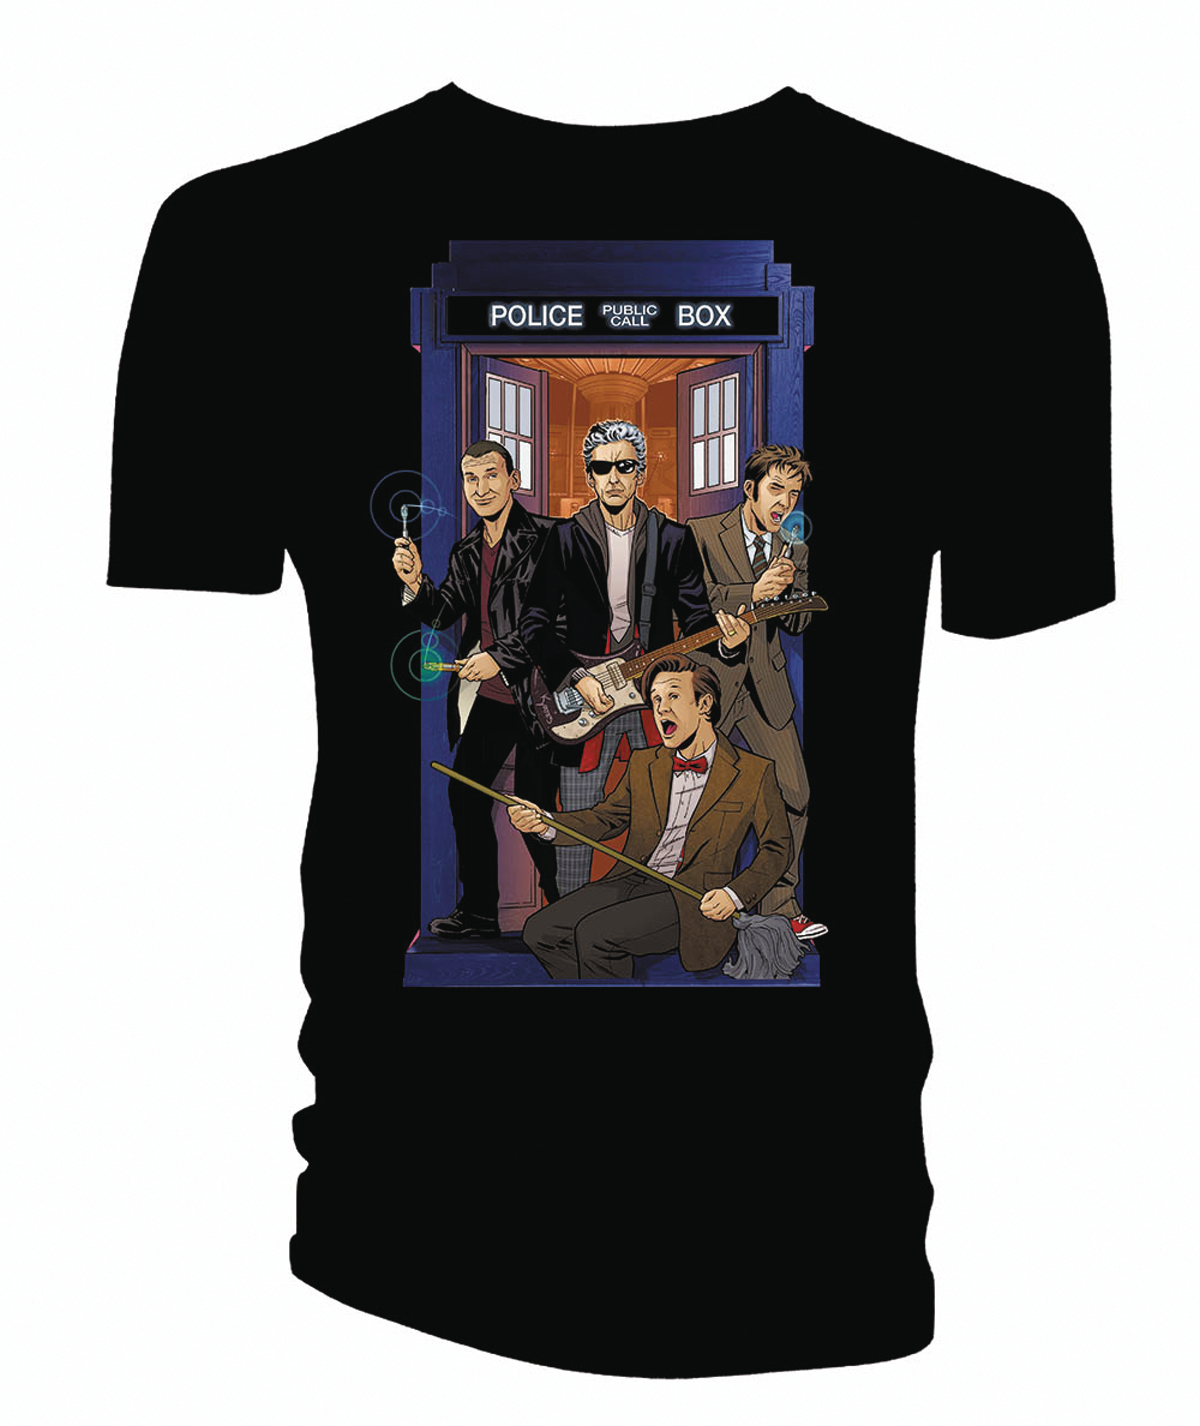 DOCTOR WHO 4 DOCTORS BAND PX BLACK T/S LG